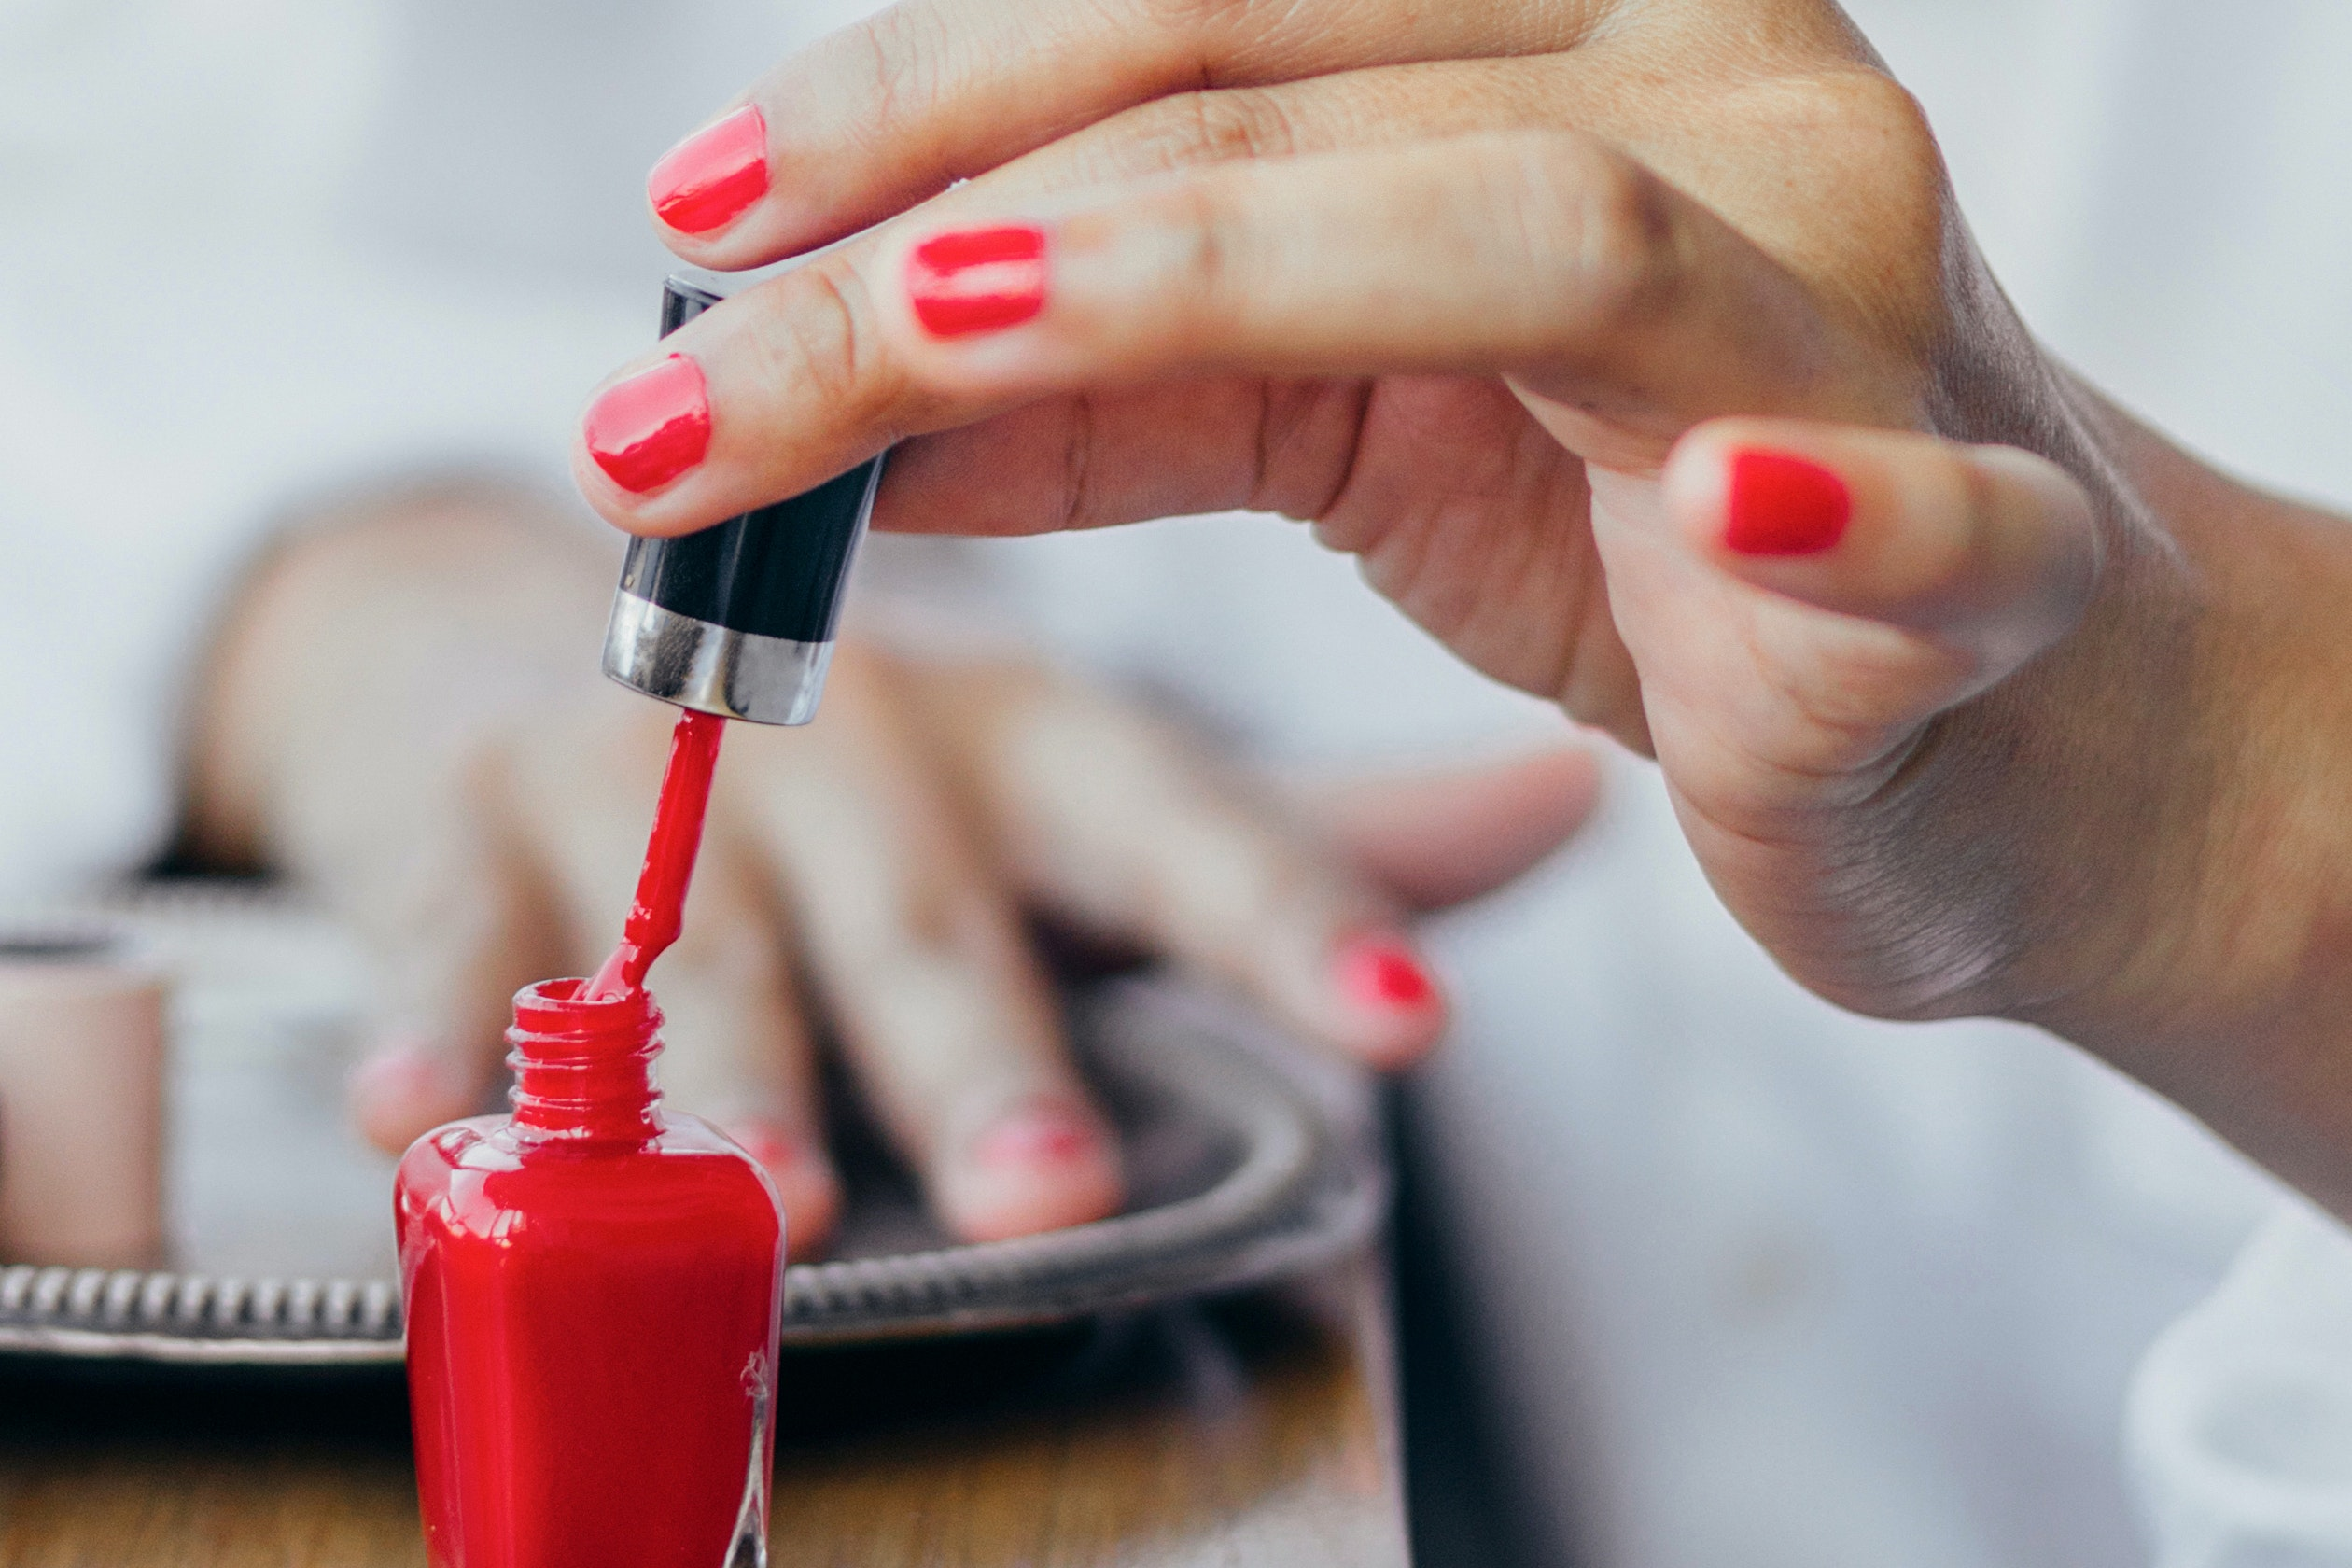 Tricks For Maintaining Your Nails At Home When You Can't Get to the Salon